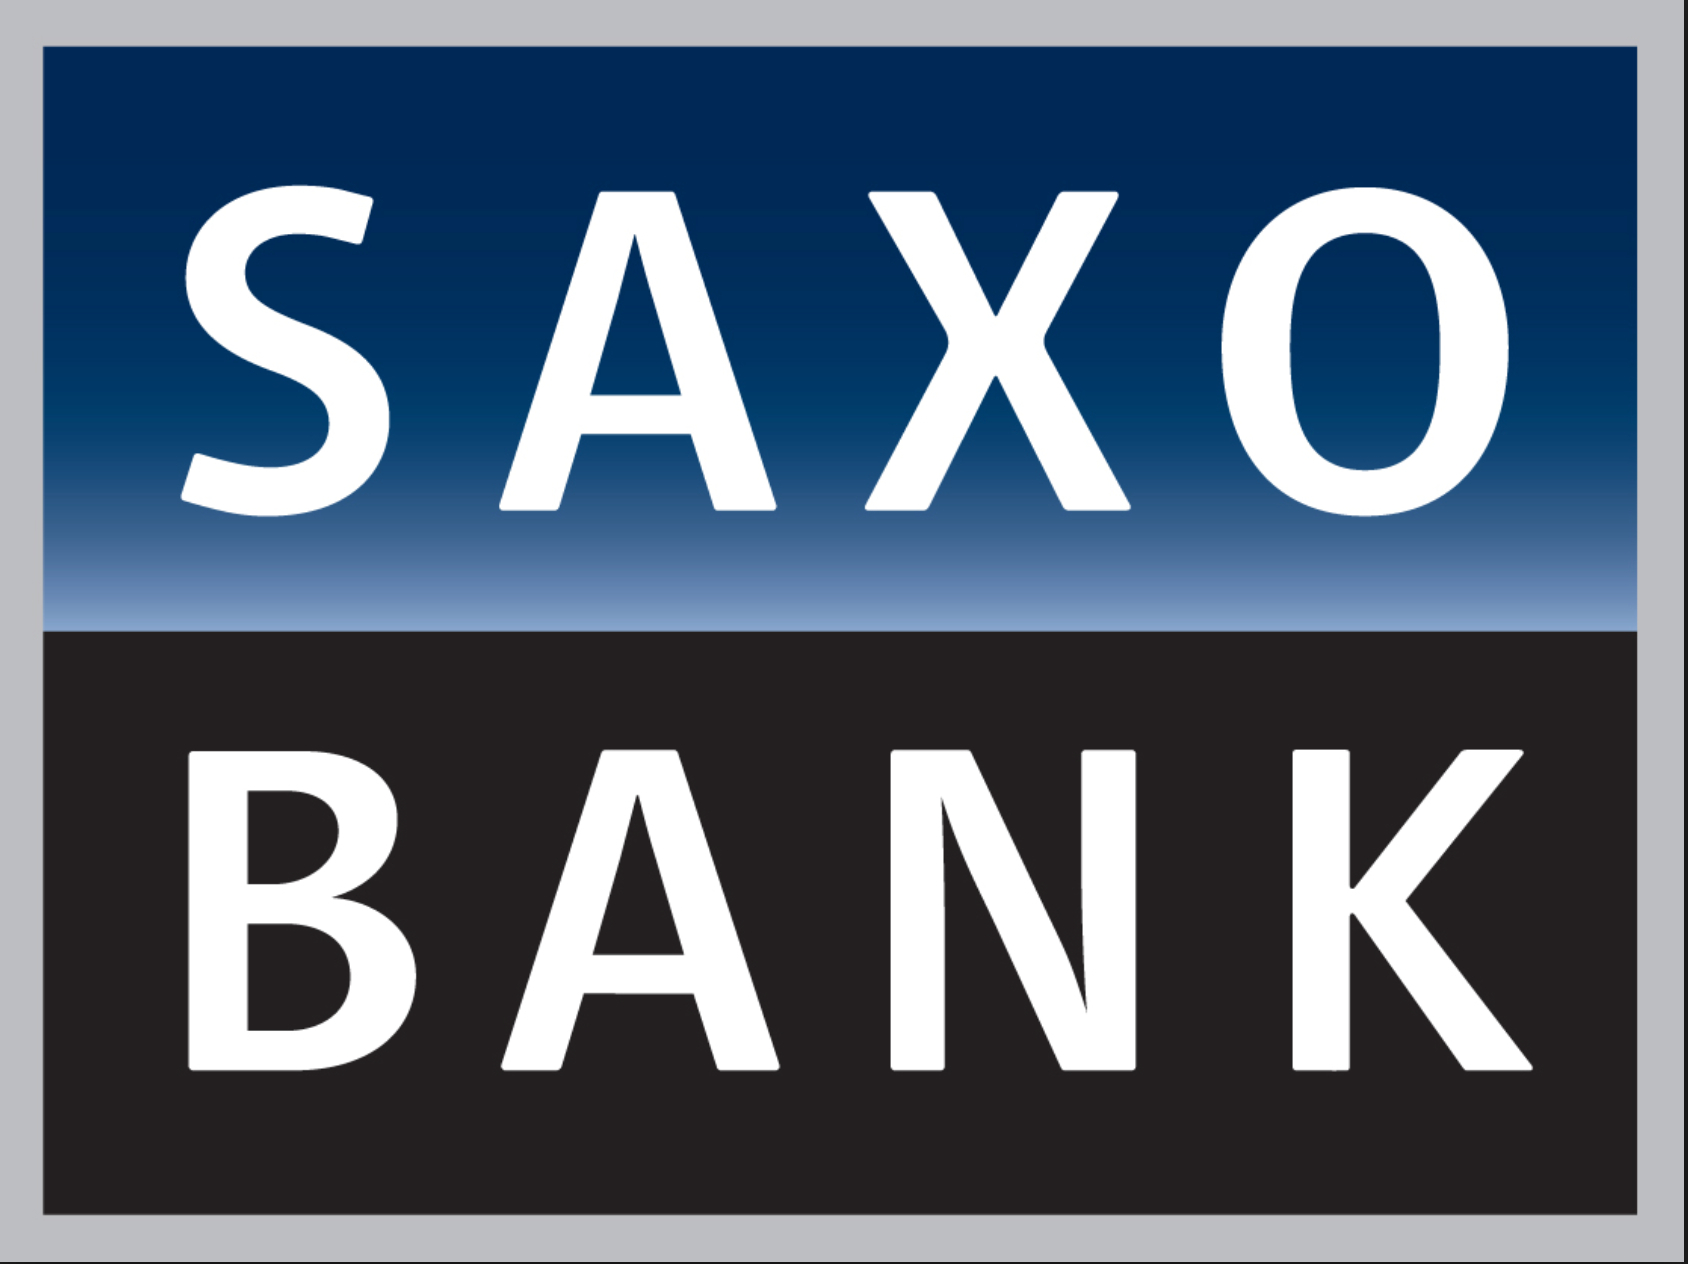 EFG Hermes and Saxo Bank Team Up to Launch Multi-Asset Trading